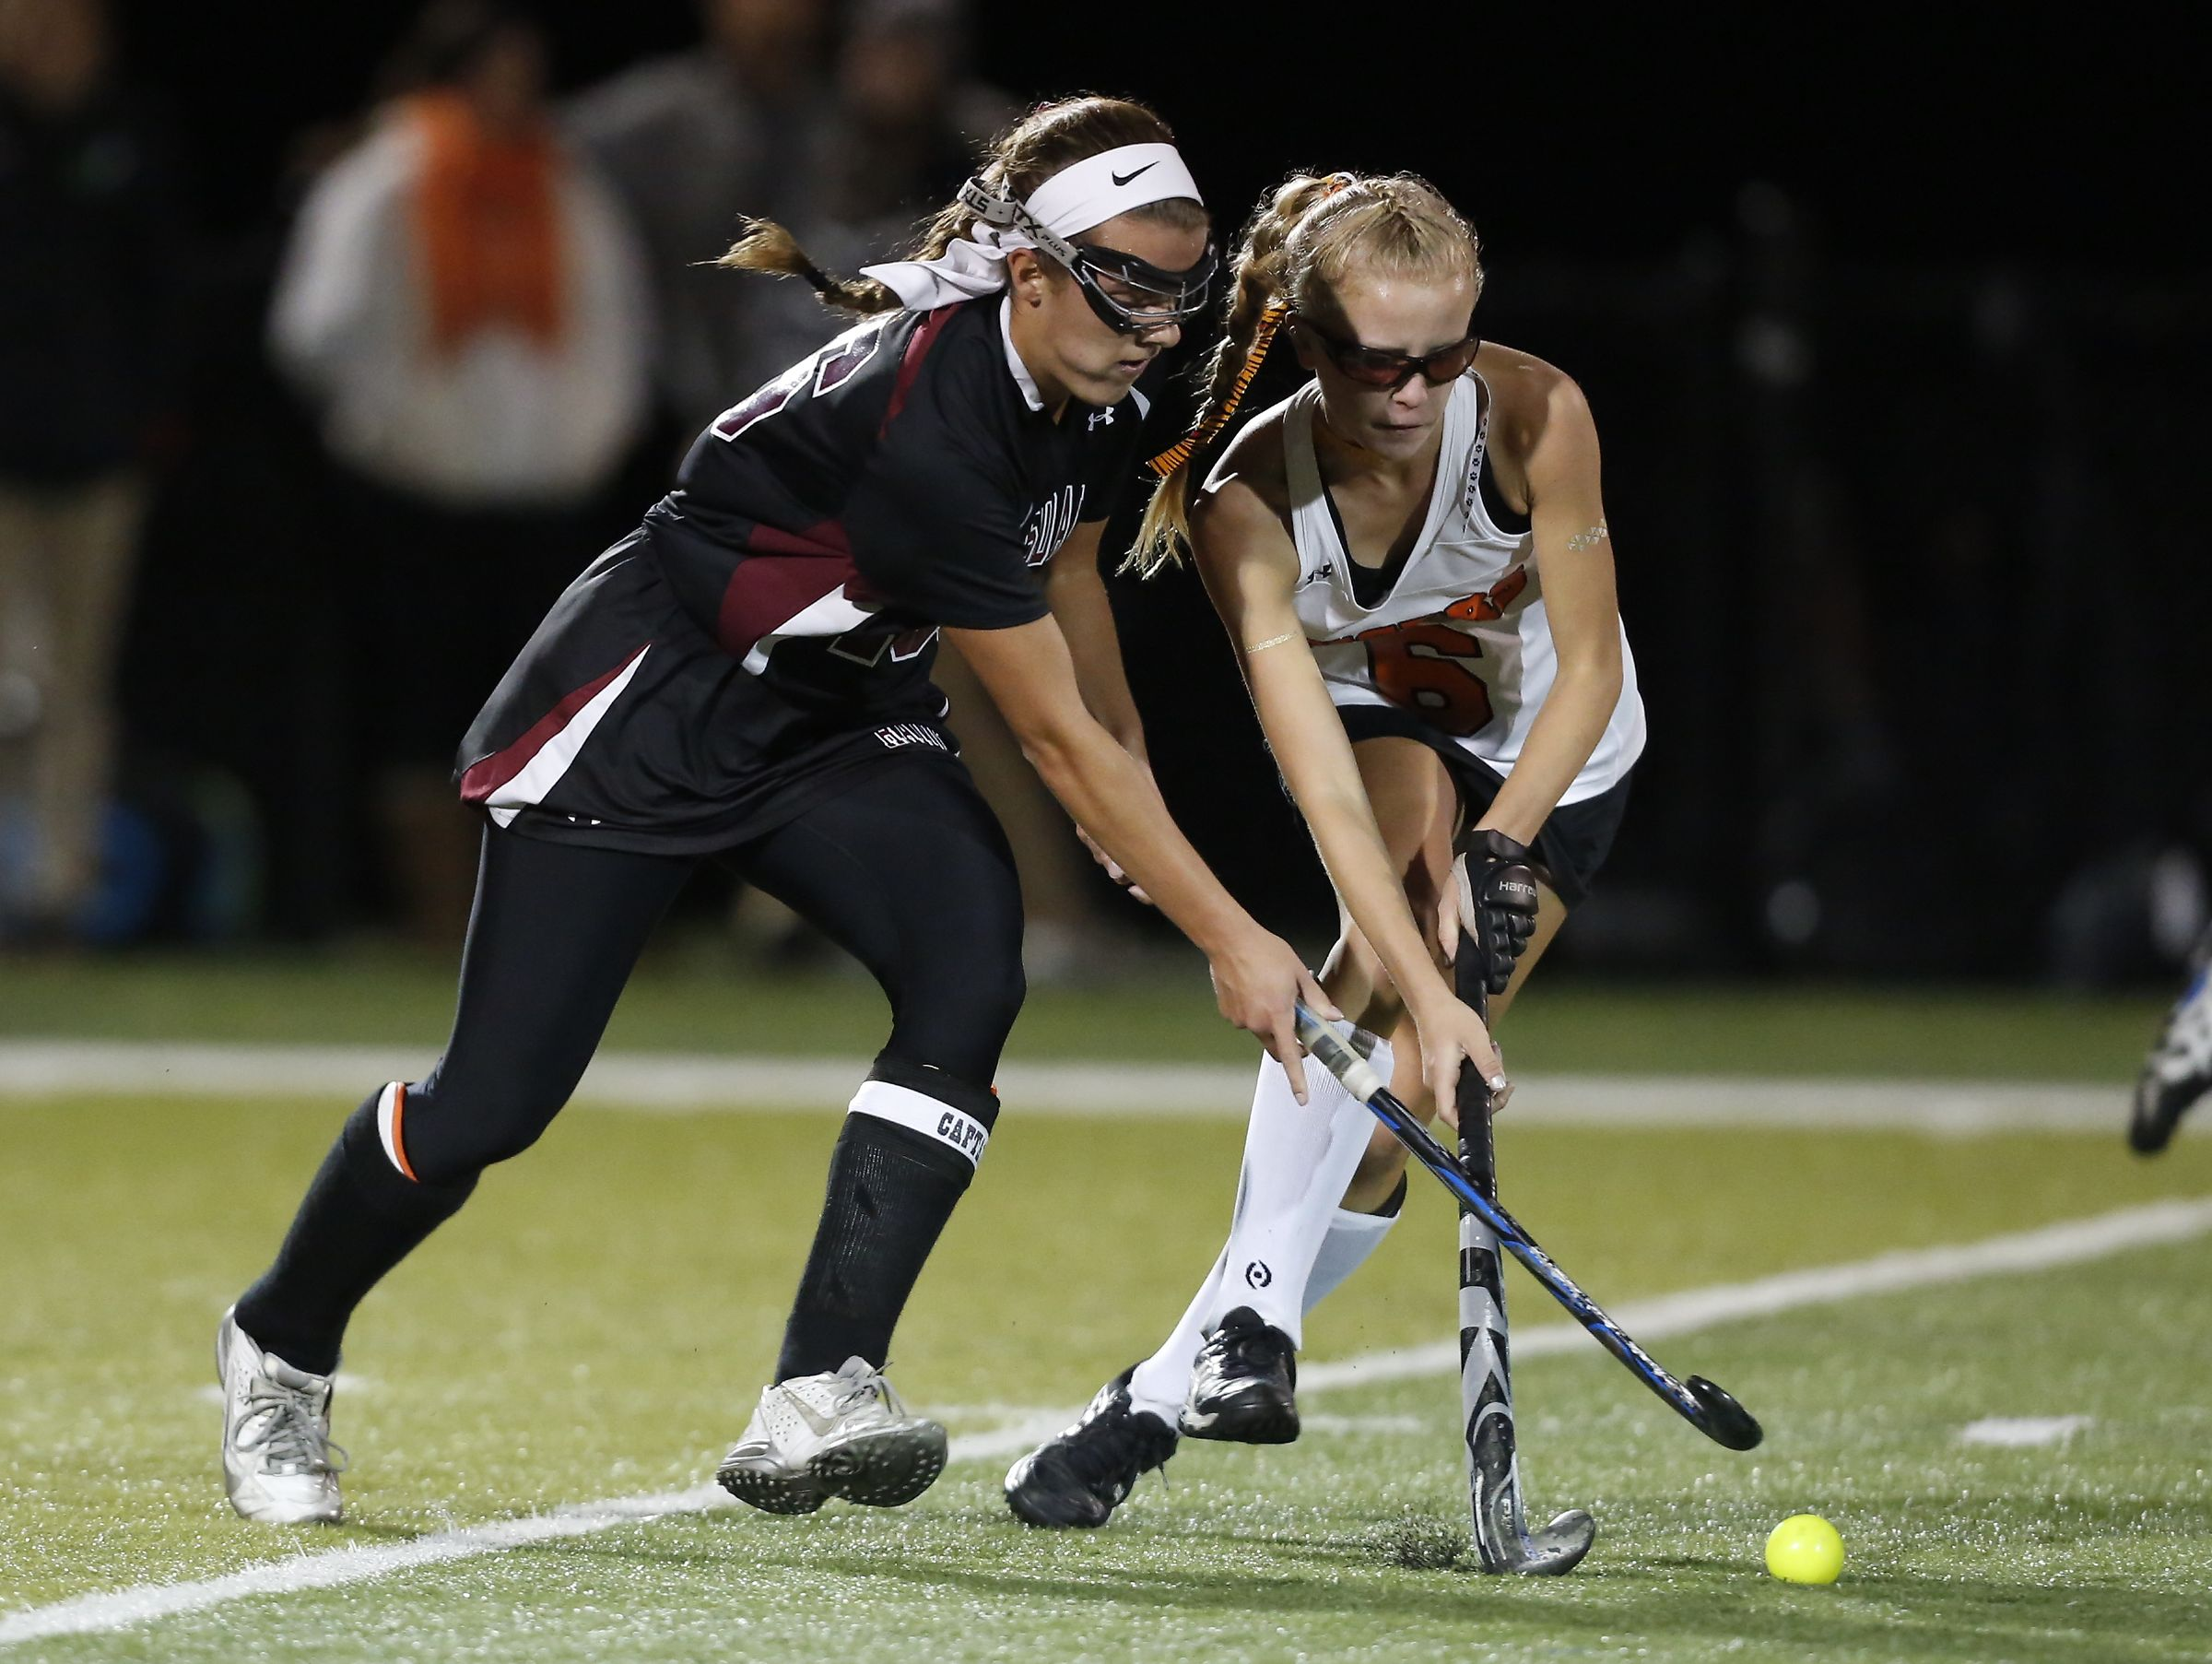 Scarsdale's Erin Nicholas (16) and Mamaroneck's Elizabeth Brissette (6) battle for possession in the Class A field hockey section finals at Brewster High School on Tuesday, November 1, 2016. Scarsdale won 2-0.